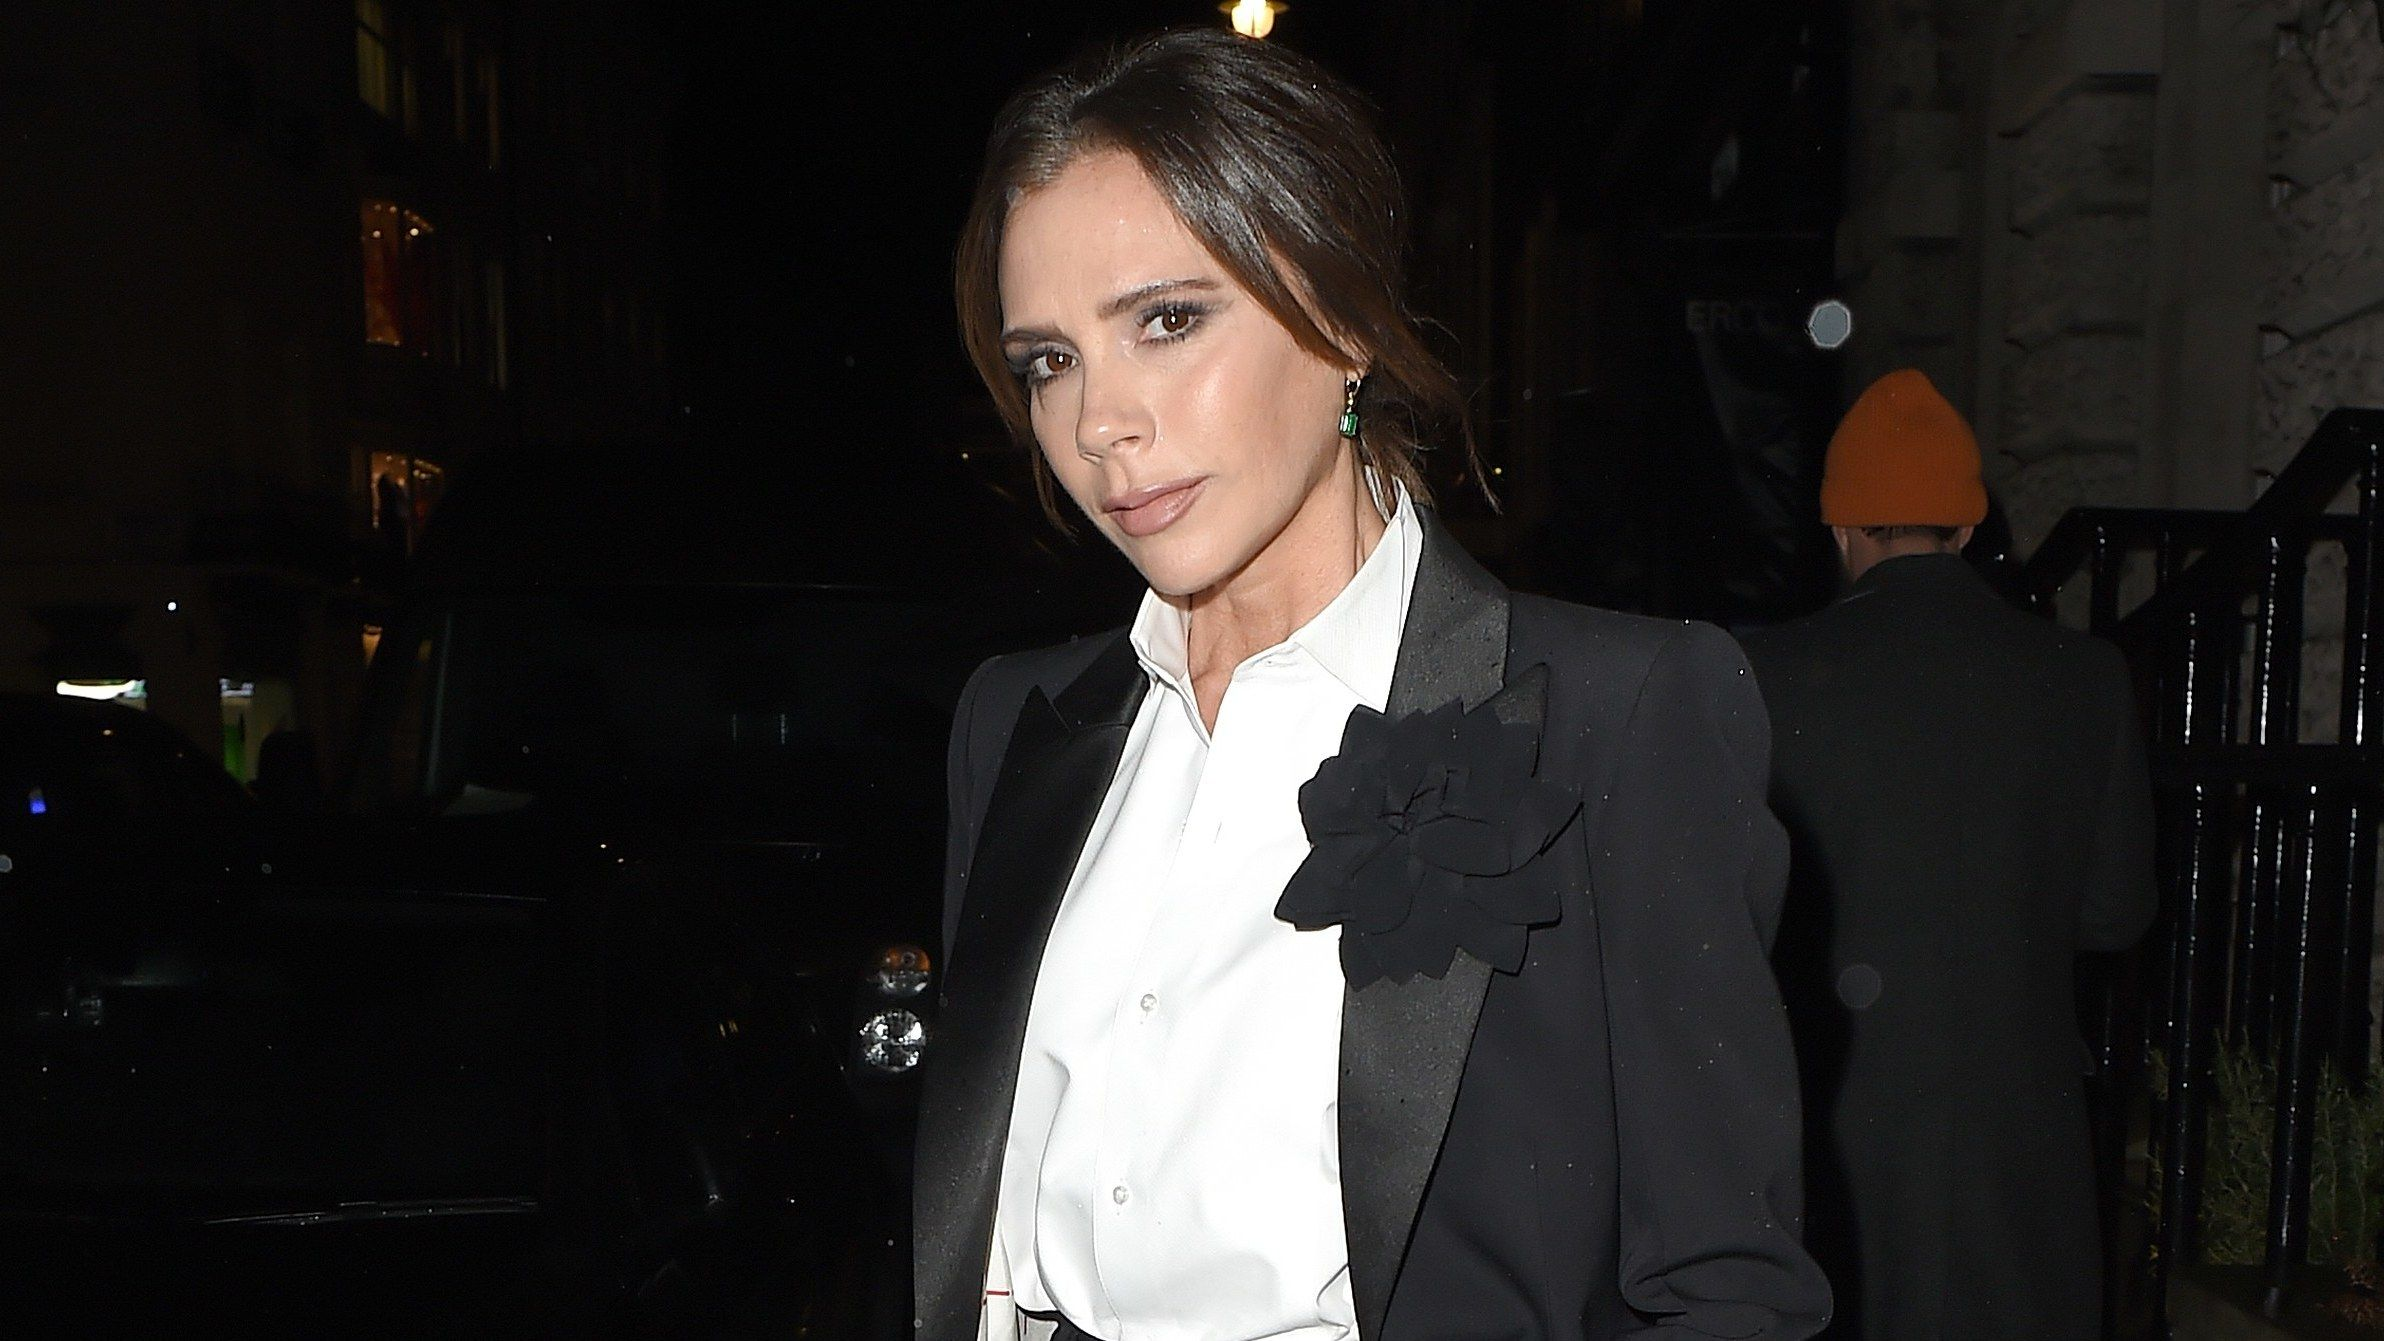 Victoria Beckham Does Holiday Party Style Like A Fashion Mogul Holiday Party Fashion Victoria Beckham Party Fashion